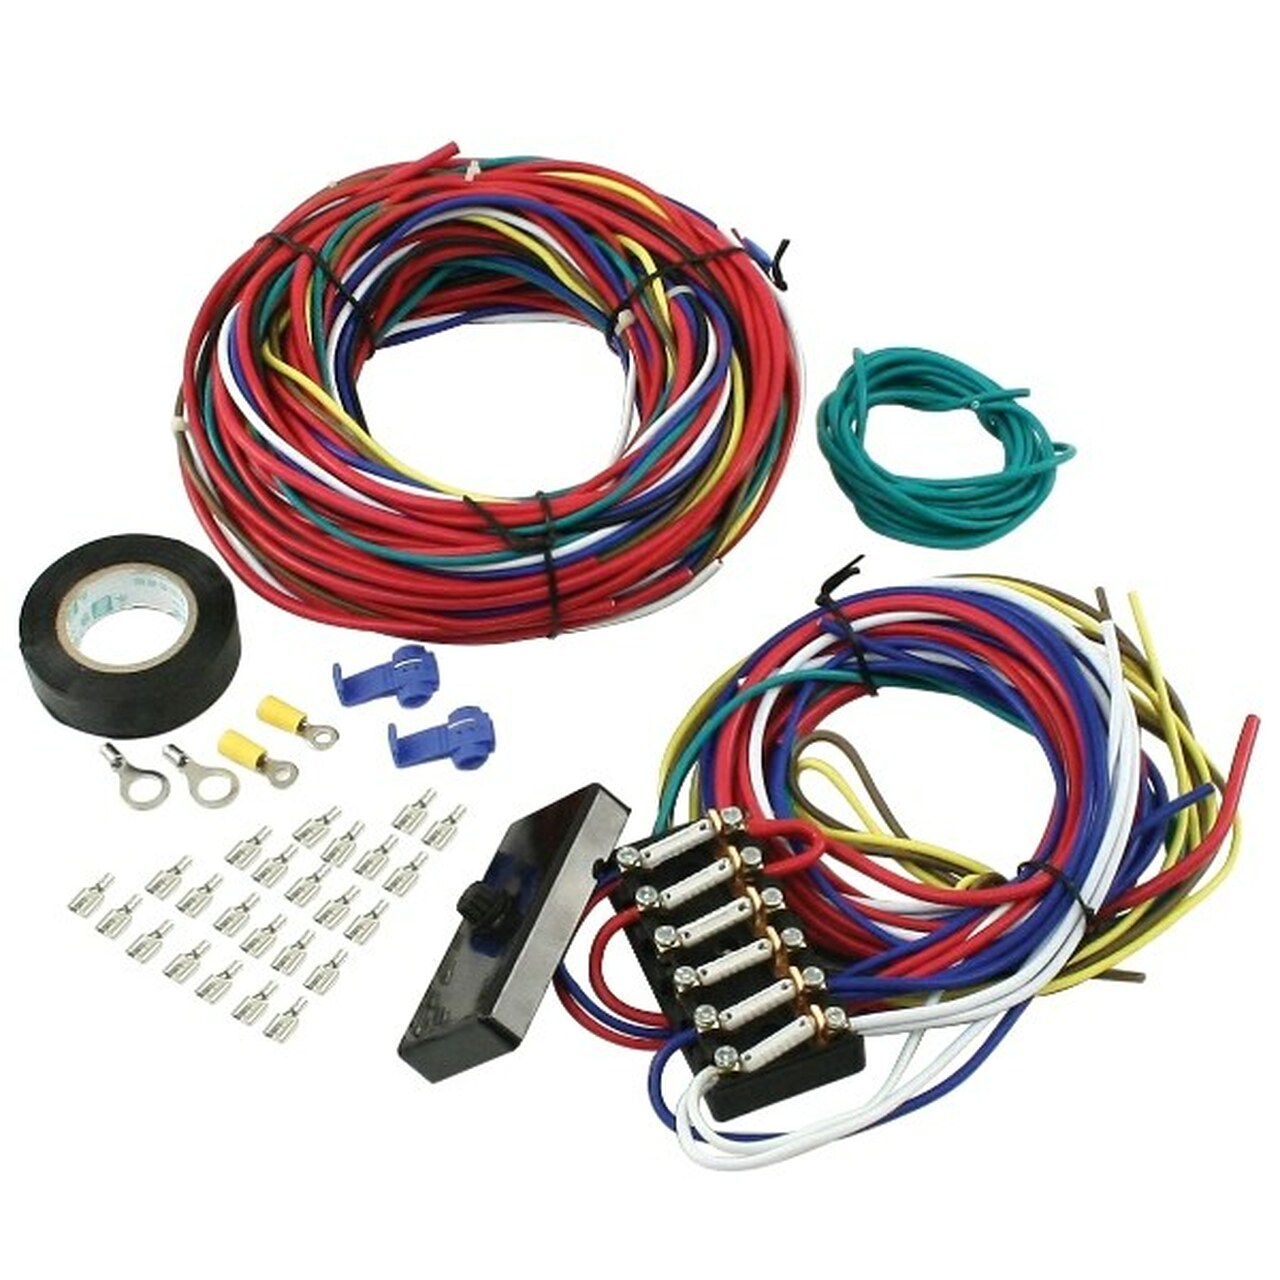 large AC971000__14441.1421968365?c=2 buggy manx wiring harness dune buggy parts, sandrail parts, vw electrical wiring harness at bayanpartner.co